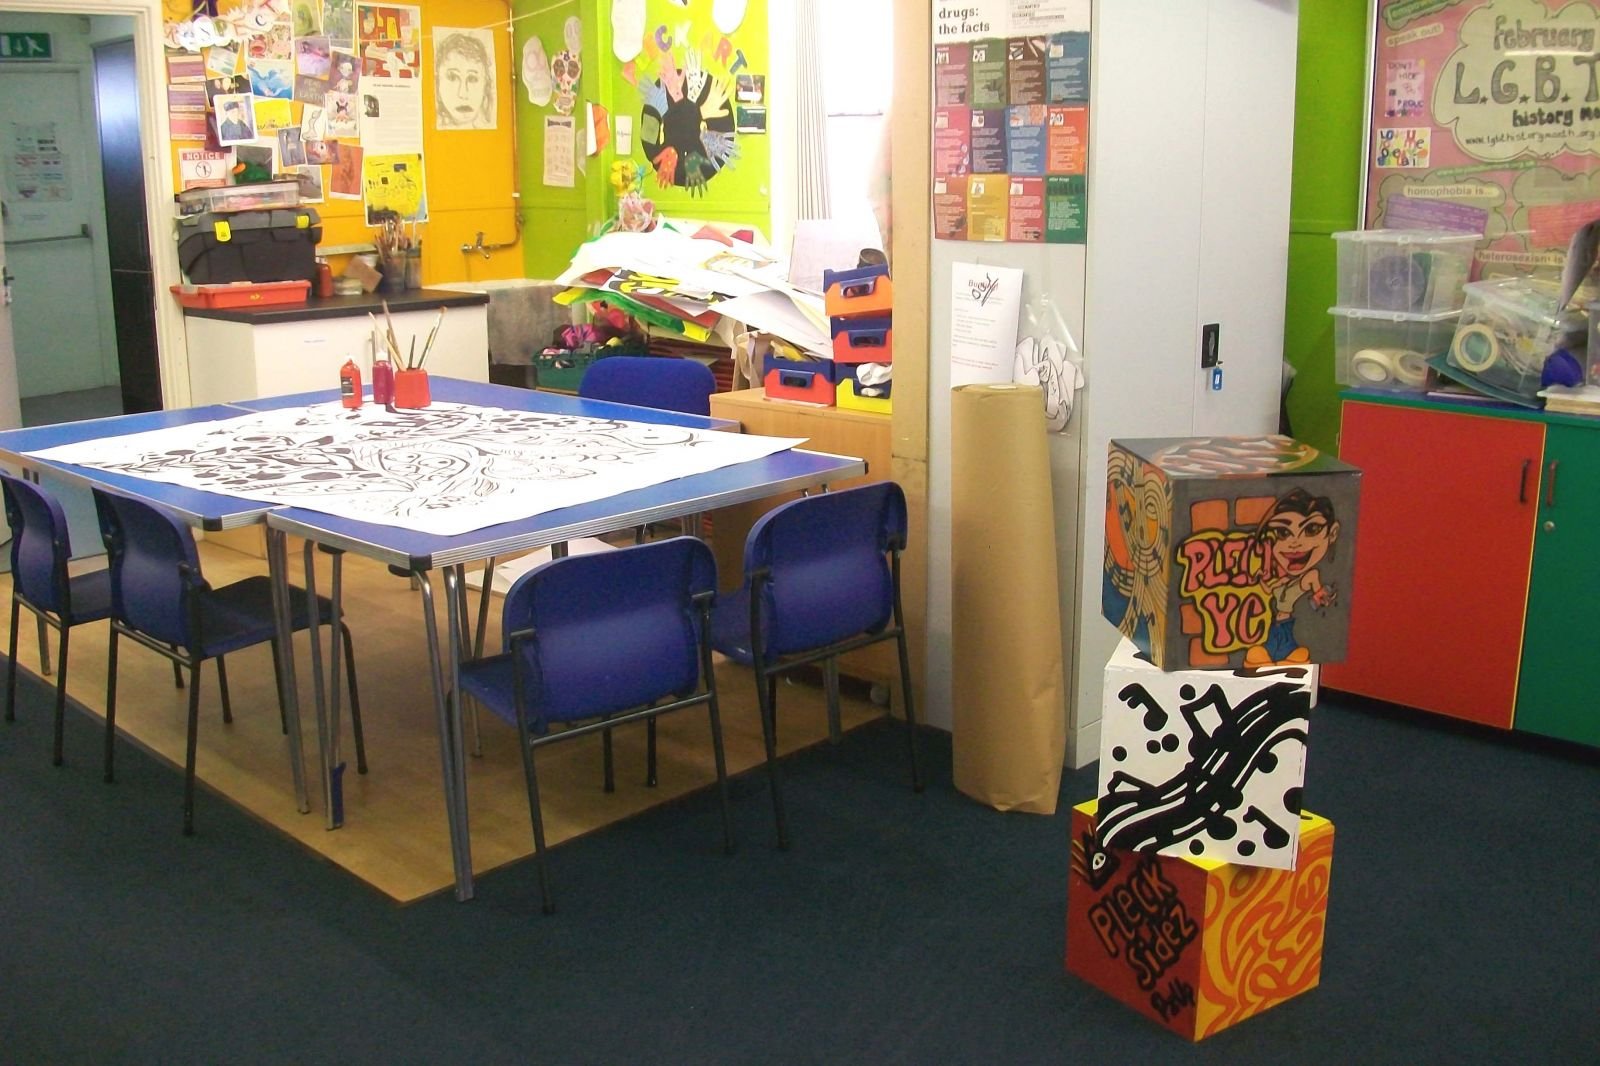 Images Inside a Youth Center